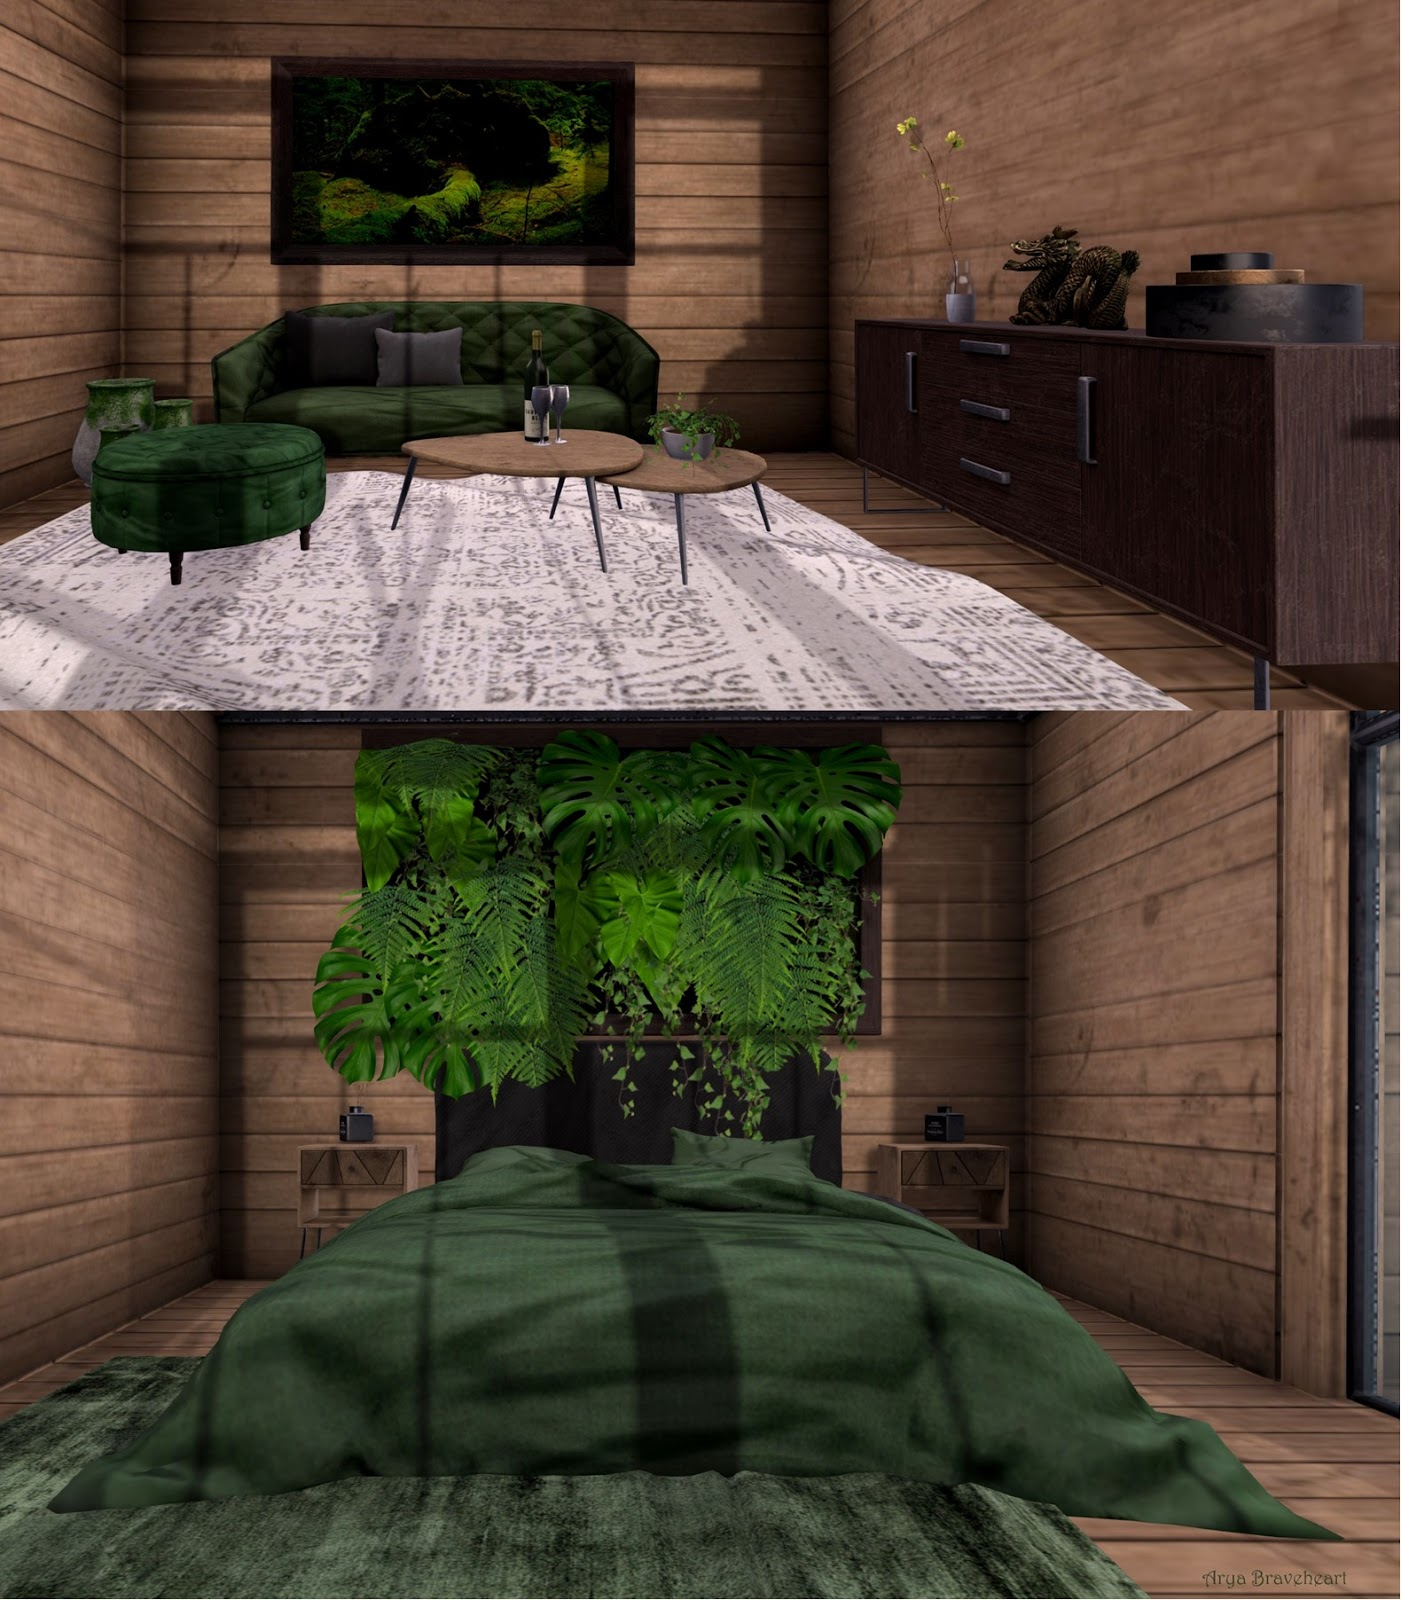 Inside the Cabin in the Woods